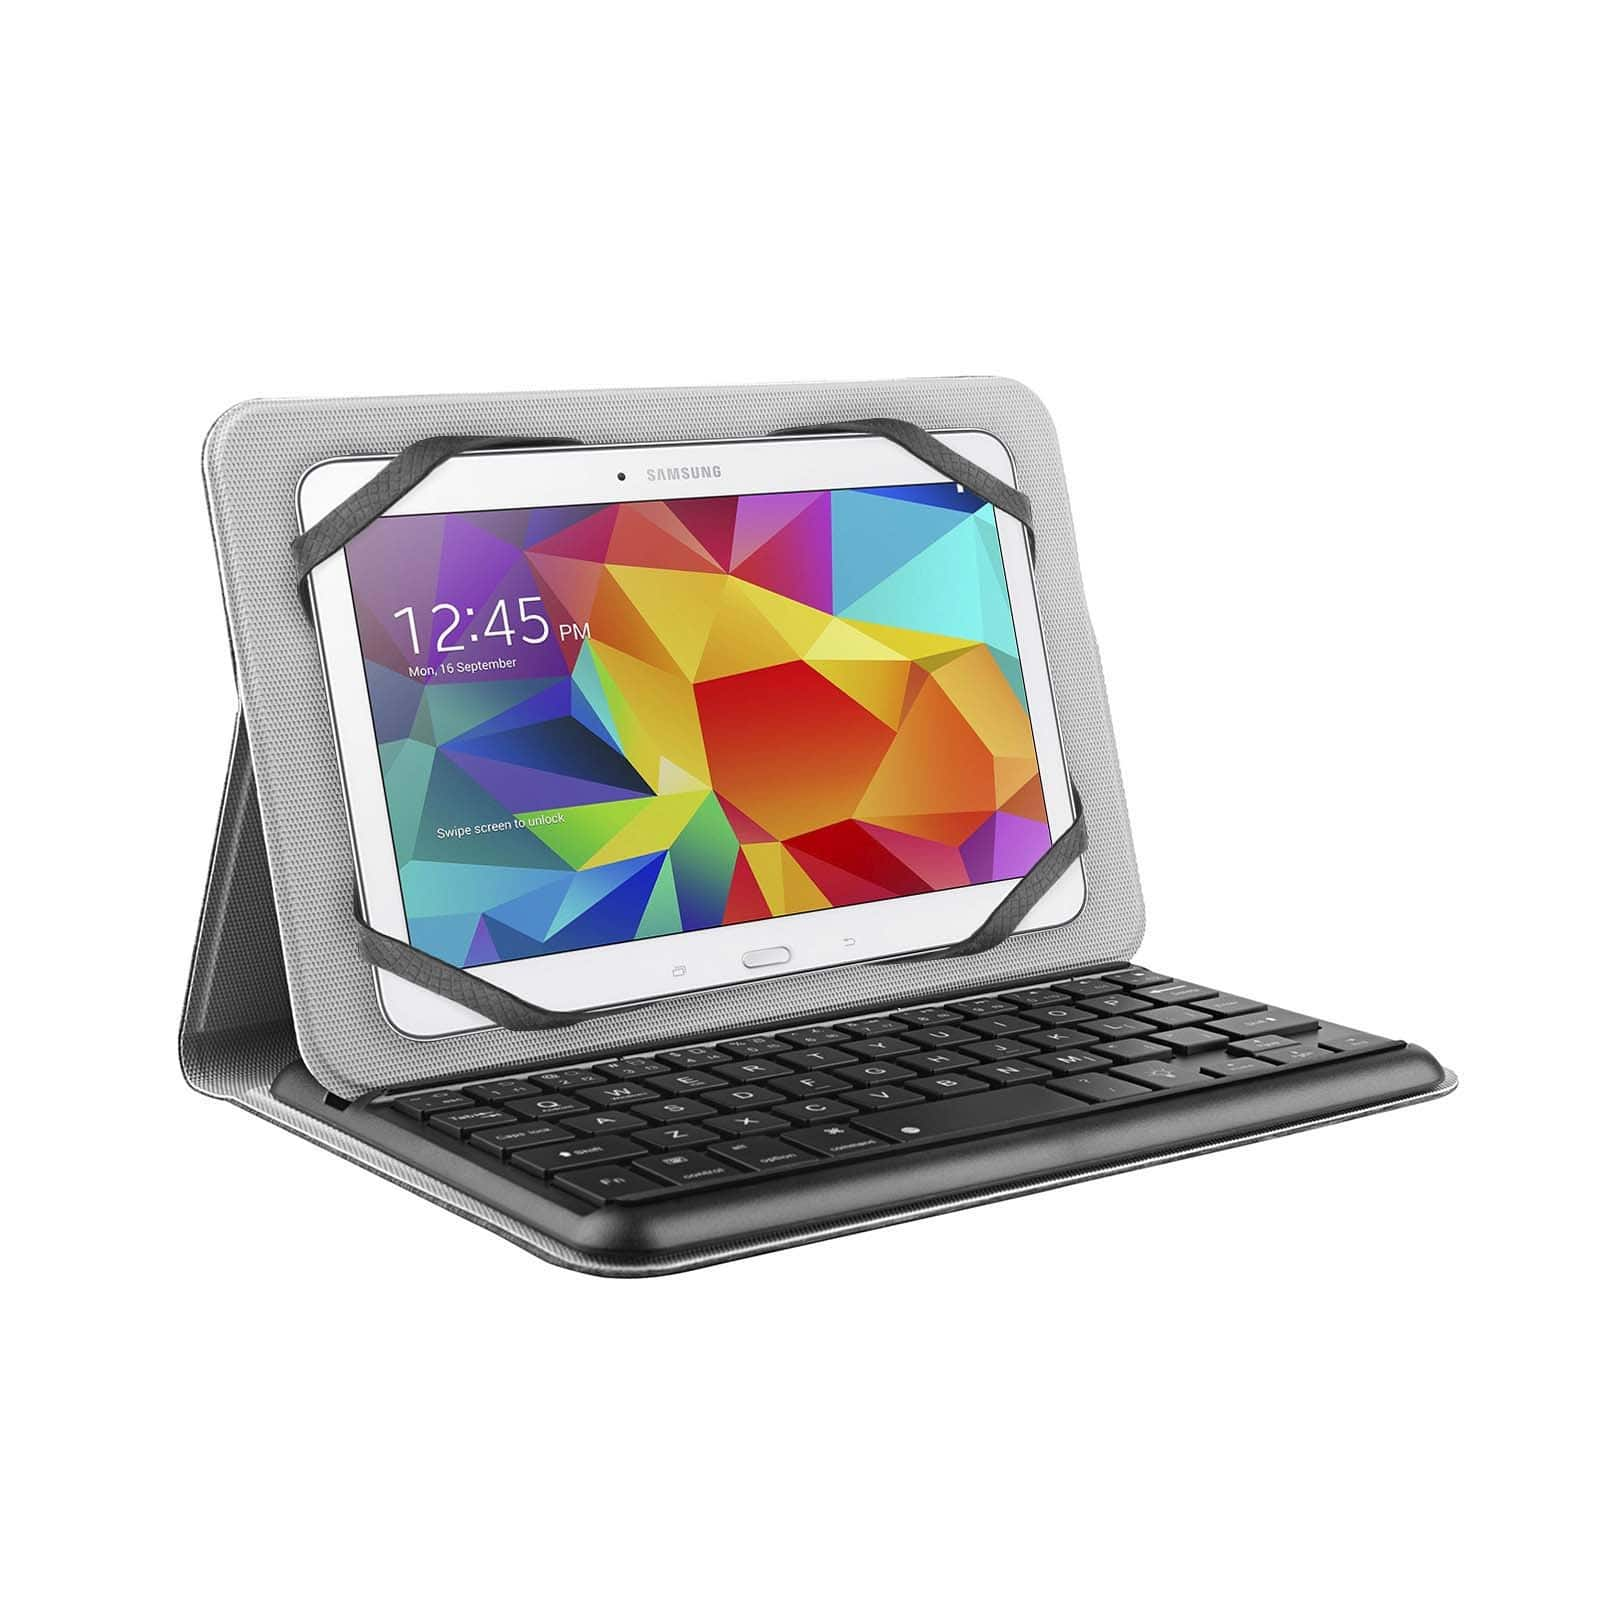 "M-Edge Folio Plus Pro Keyboard for 7-8"" or 9-10""Tablets (New Bulk) $5 + Free Shipping"